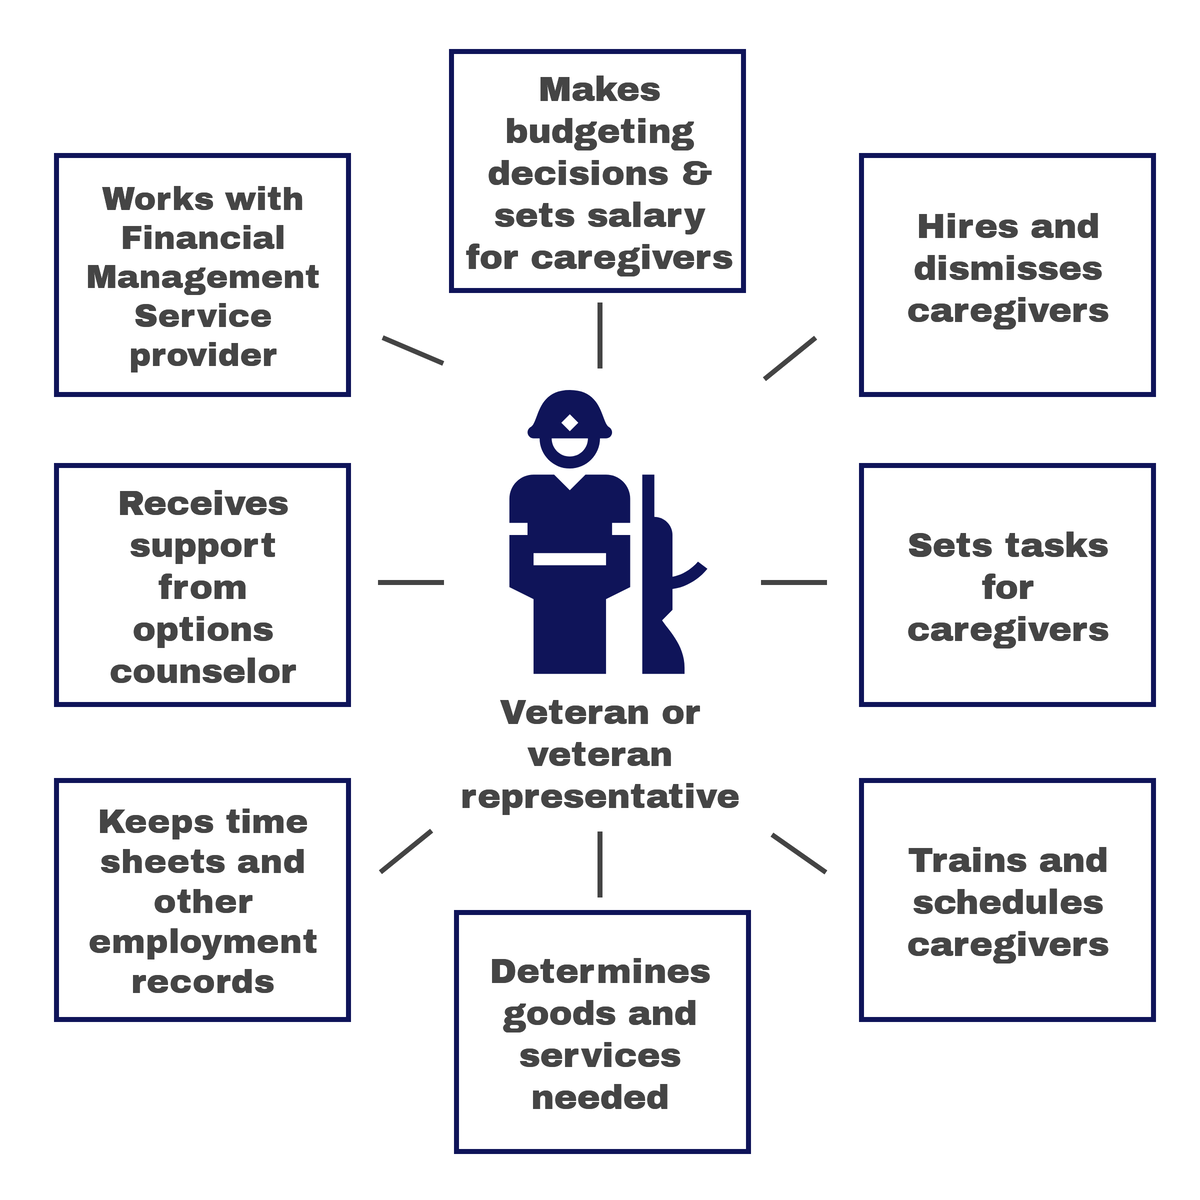 Graphic with soldier in the center representing Veteran or veteran representative and showing 8 boxes with the following information: makes budgeting decisions & sets salary for caregivers, hires and dismisses caregivers, sets tasks for caregivers, trains and schedules caregivers, determines good and services needed, keeps time sheets and other employment records, receives support from options counselor, and works with Financial Management Service provider